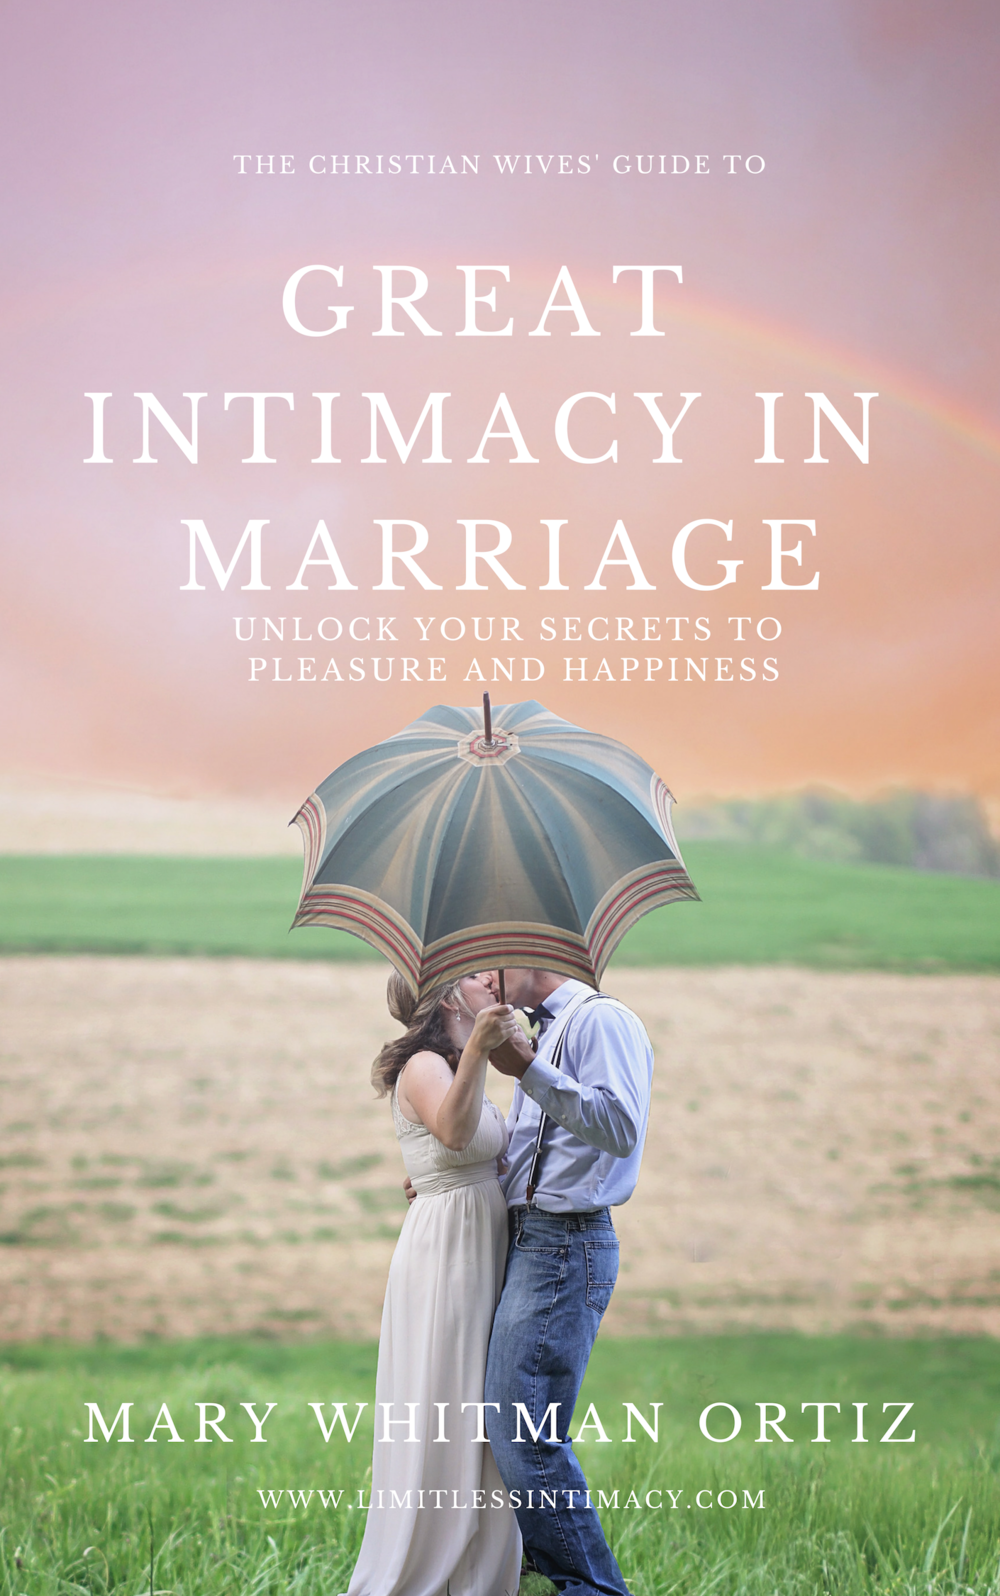 The Christian Wives' Guide to Great Intimacy in Marriage: - 4-weeks to Unlock Your Secrets to Pleasure and Happiness